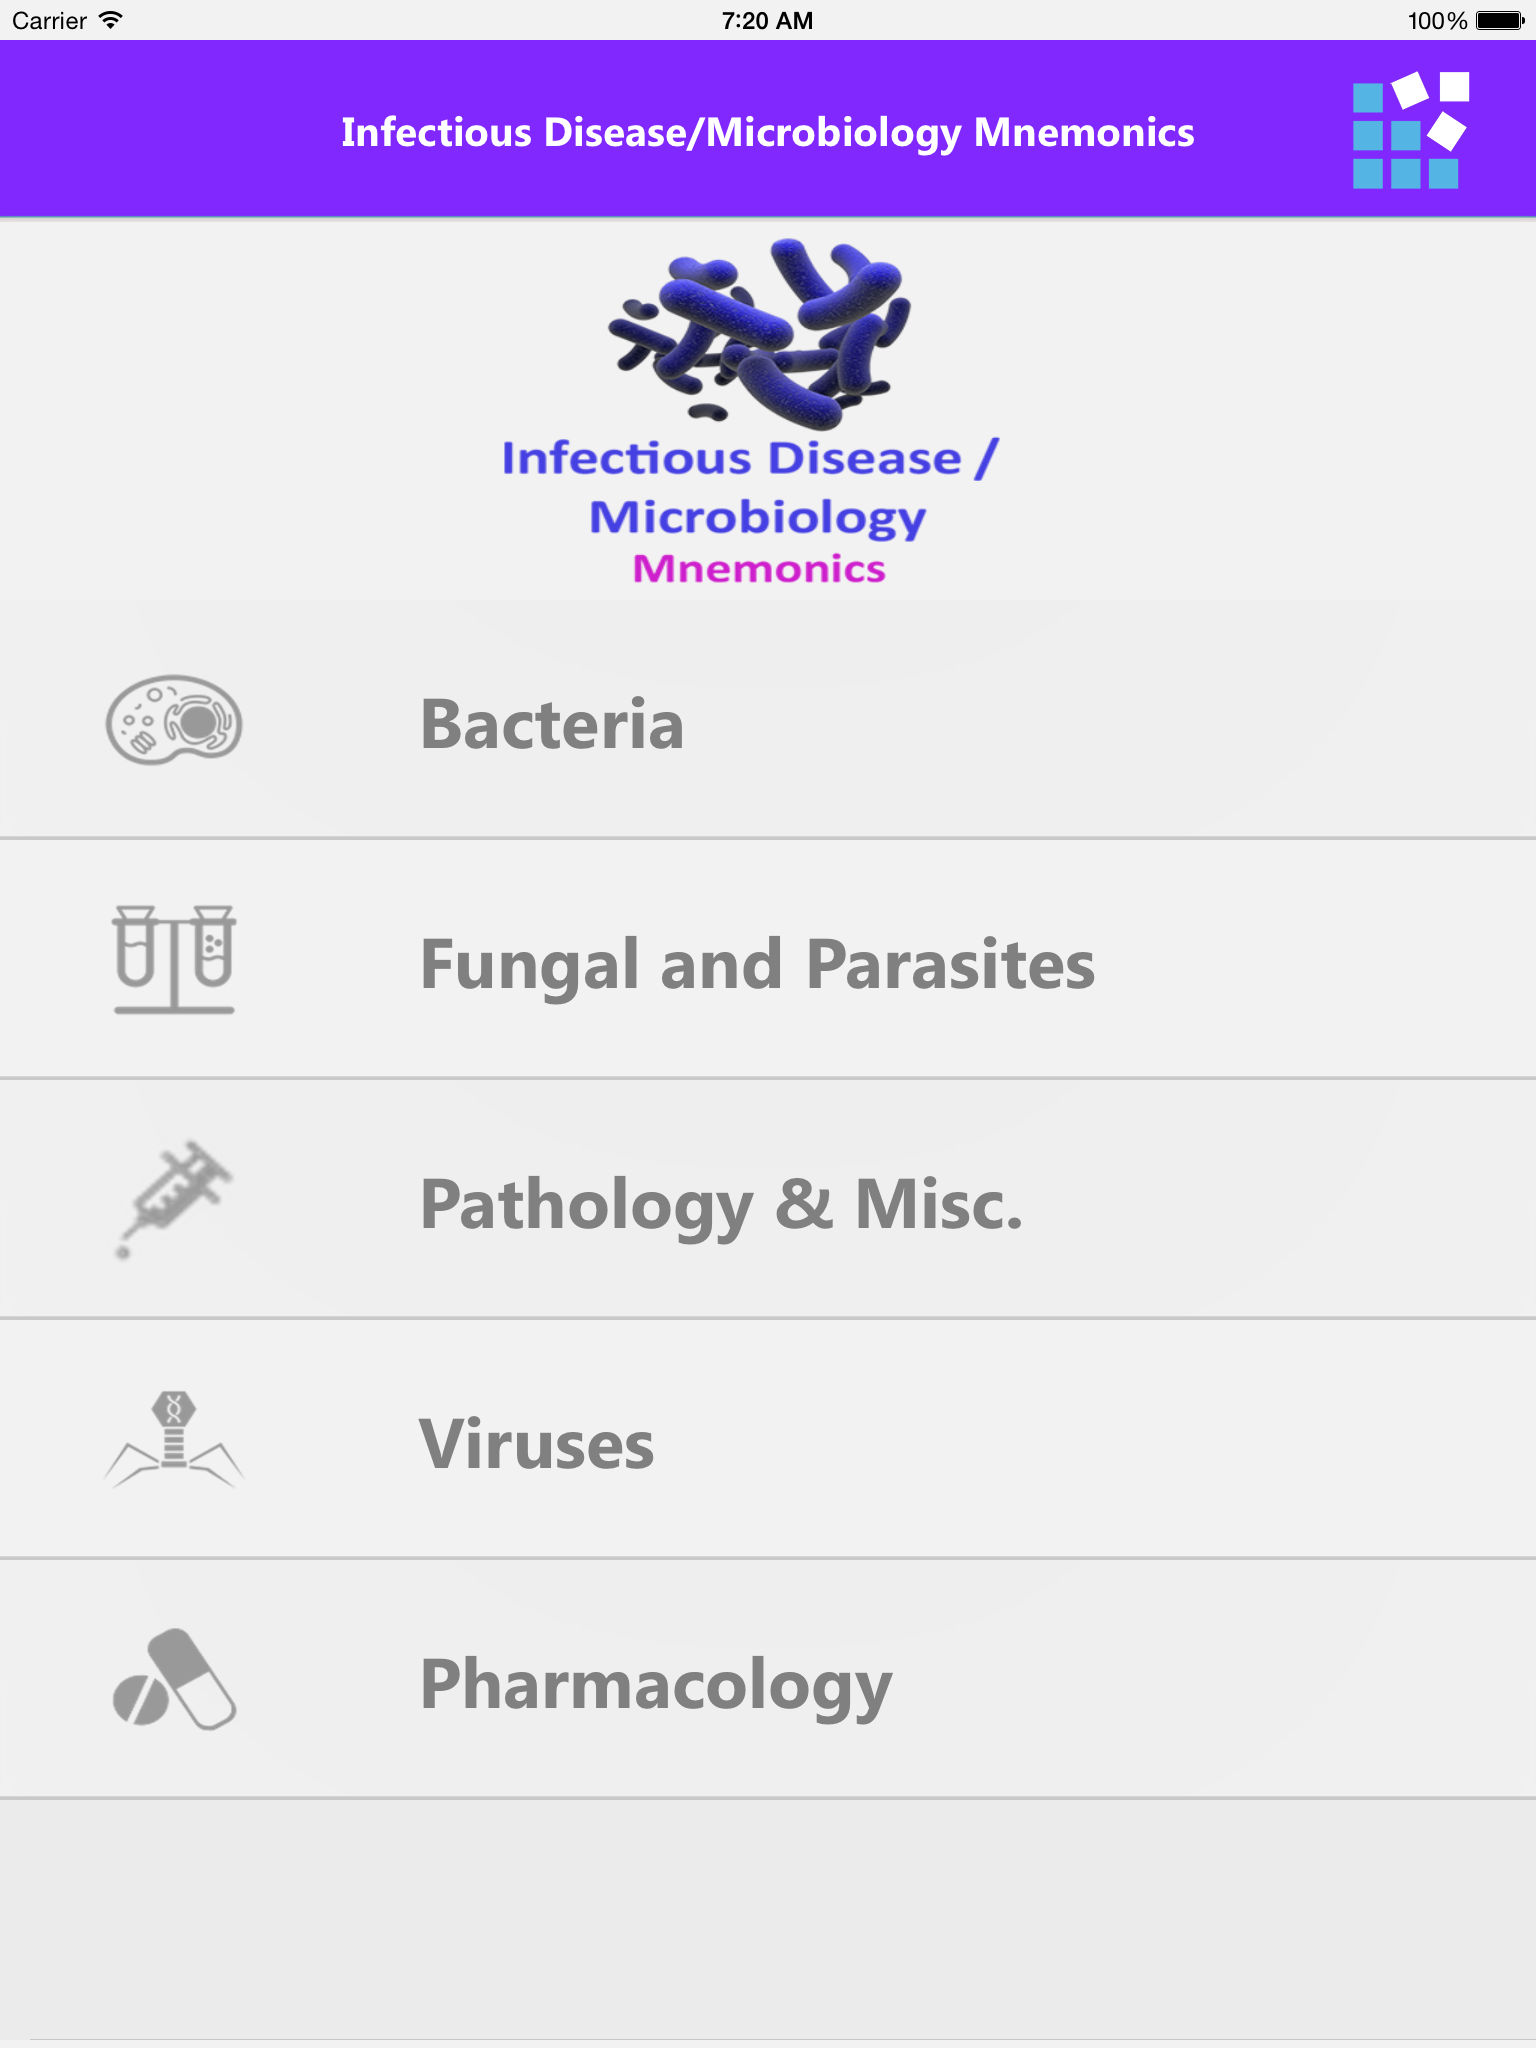 Infectious Disease Mnemonics App Ranking and Store Data | App Annie